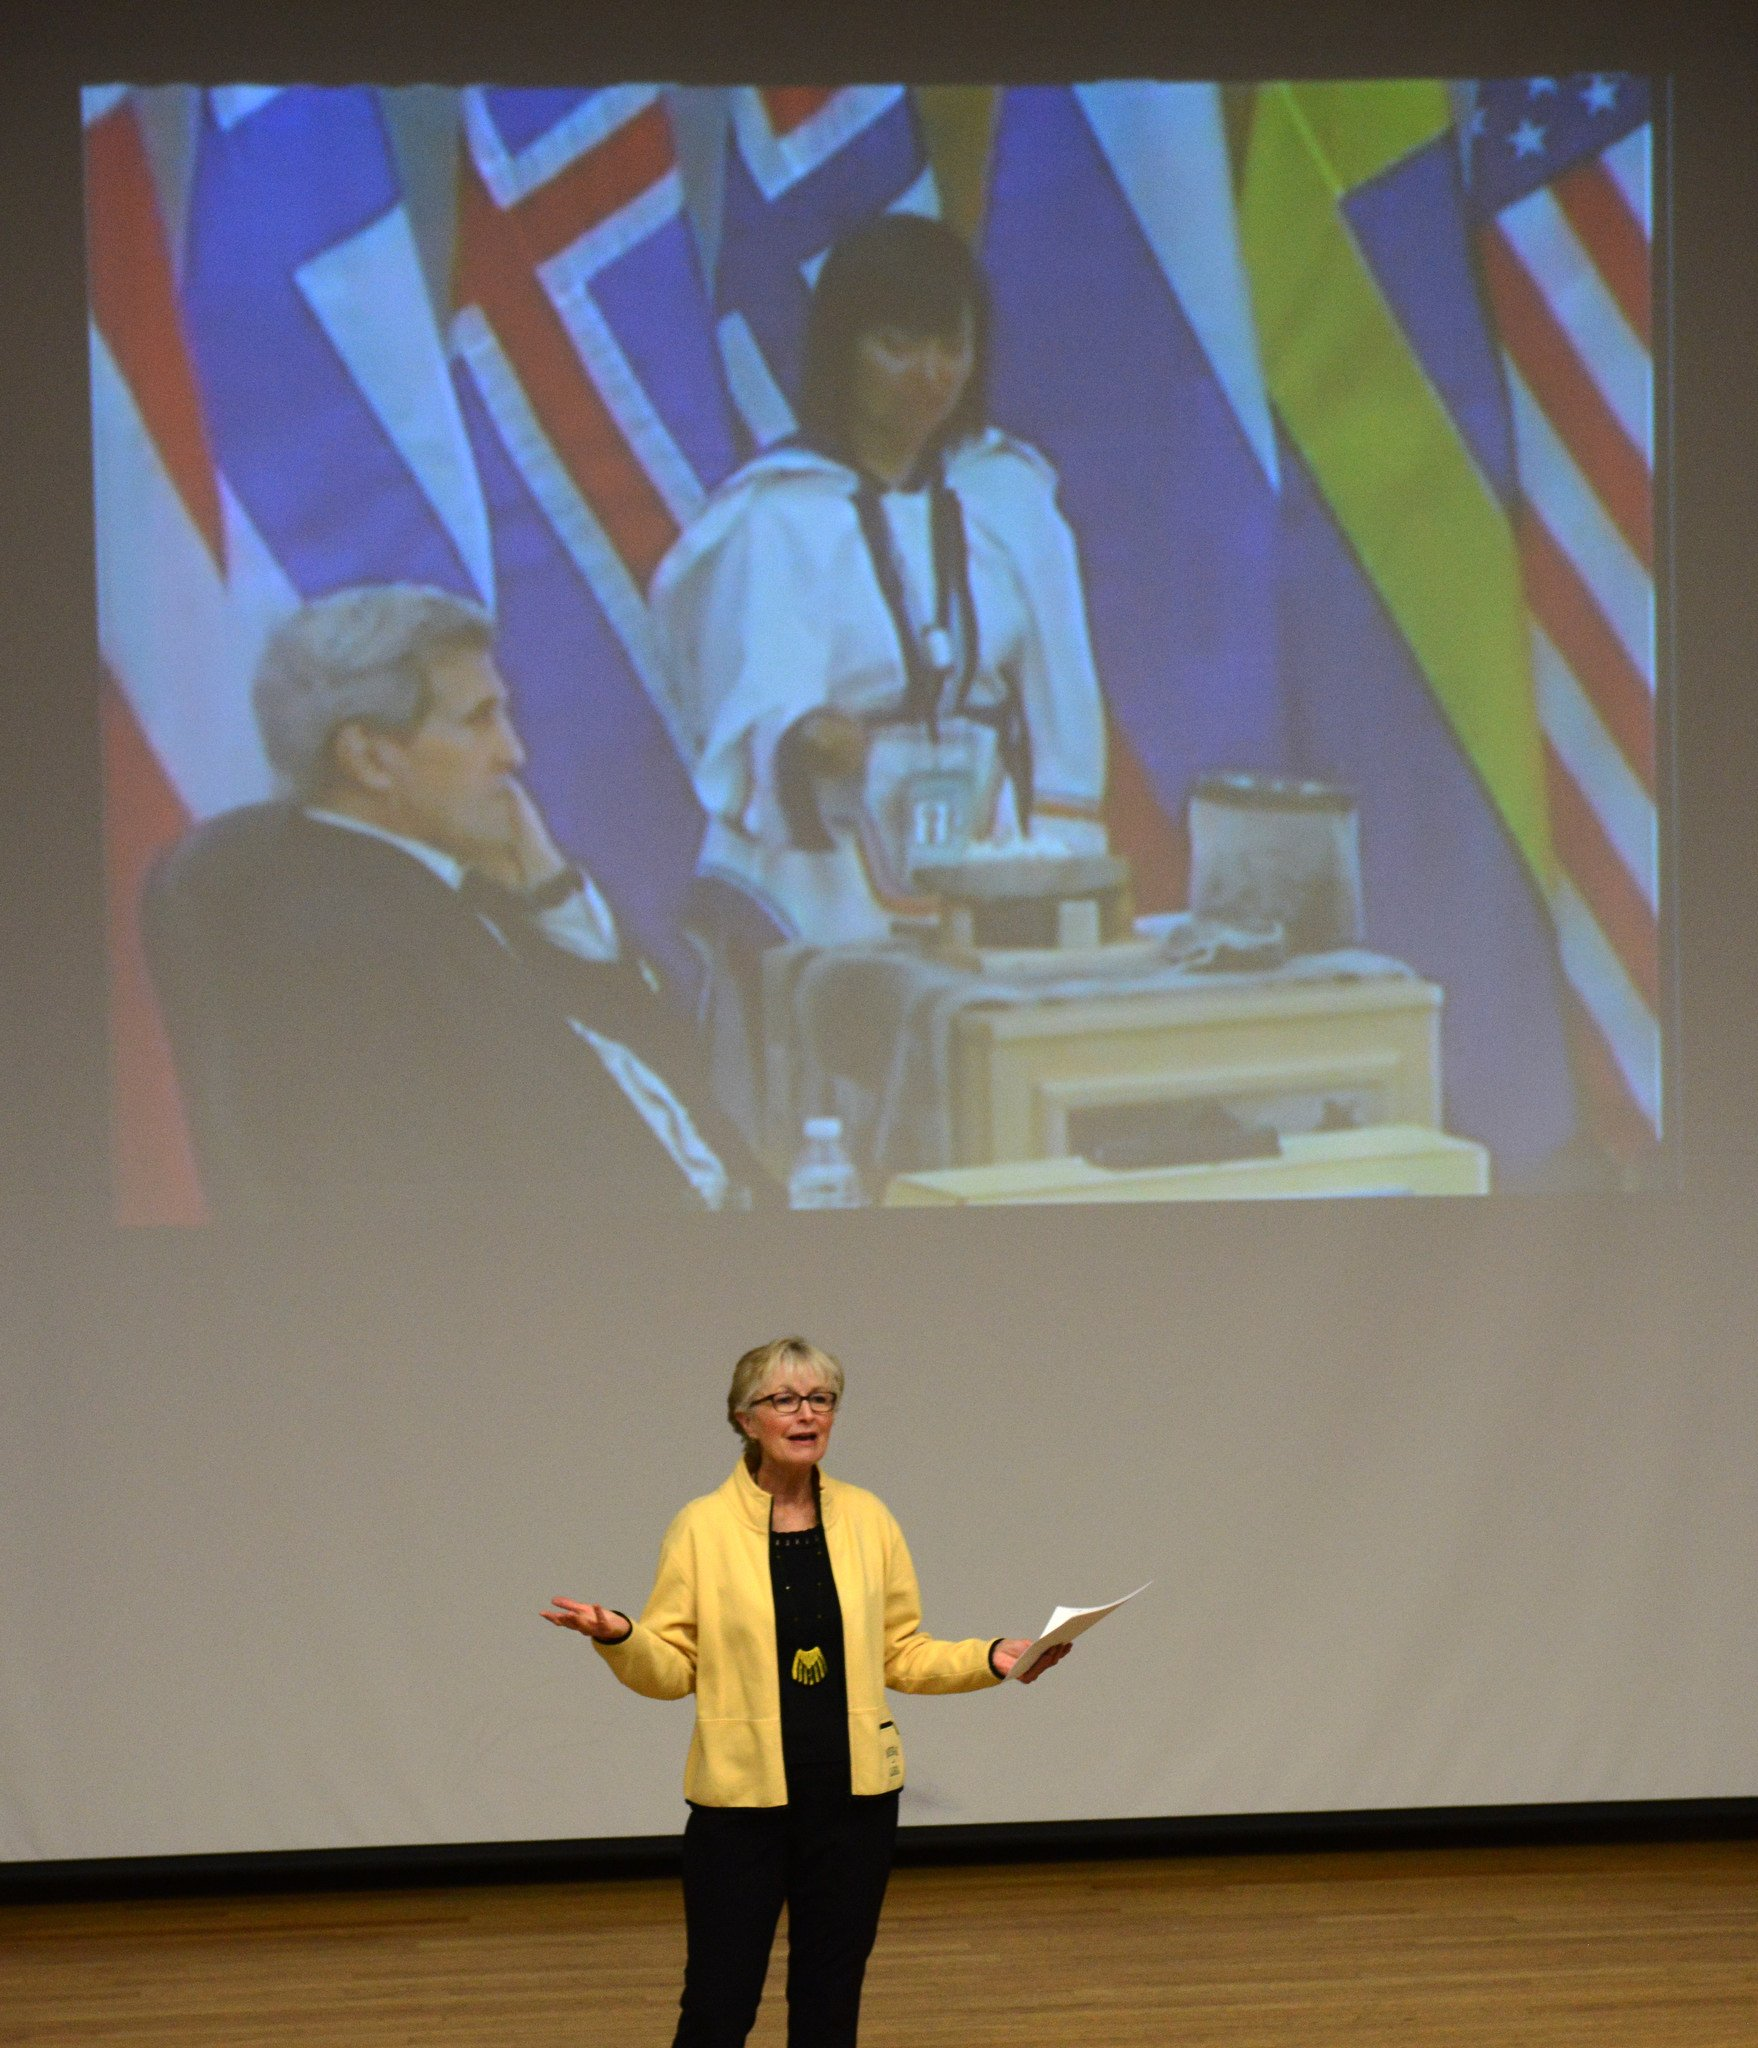 Fran Ulmer welcomes viewers to a live-stream showing of the Arctic Council meeting held in Iqaluit, Nunavut, Canada on Friday morning, April 24, 2015, at UAA. Ulmer, chair of the U.S. Arctic Research Commission, will serve on the U. S. chairmanship team as leadership is passed from Canada to the U.S. and Secretary of State John Kerry, above left. Kerry greeted Ulmer and Alaskans watching the event in his remarks. (Erik Hill / Alaska Dispatch News)